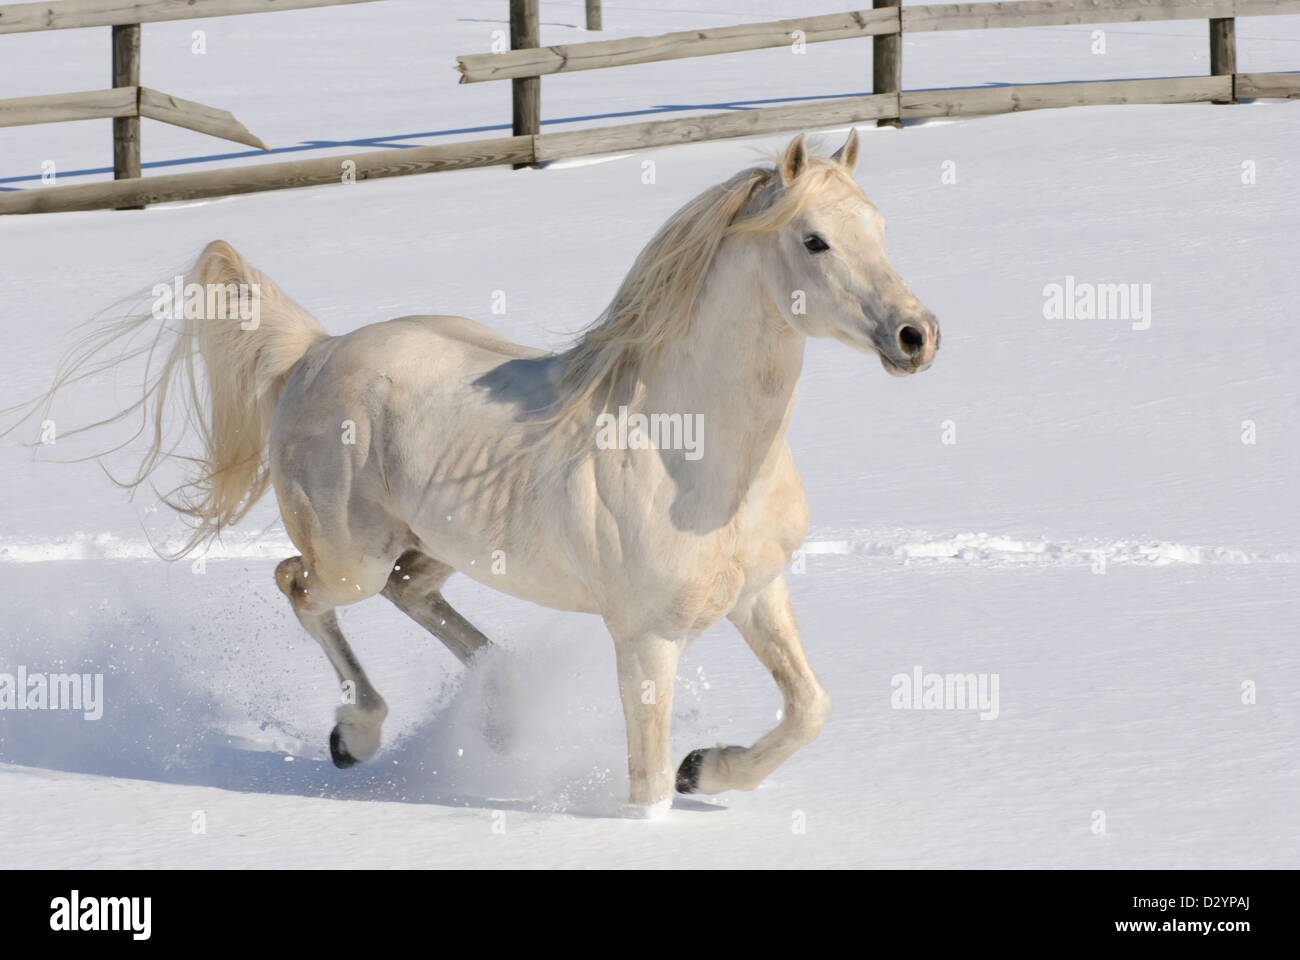 A pure bred Arabian Stallion running freely with mane and tail flying in new fallen snow - Stock Image